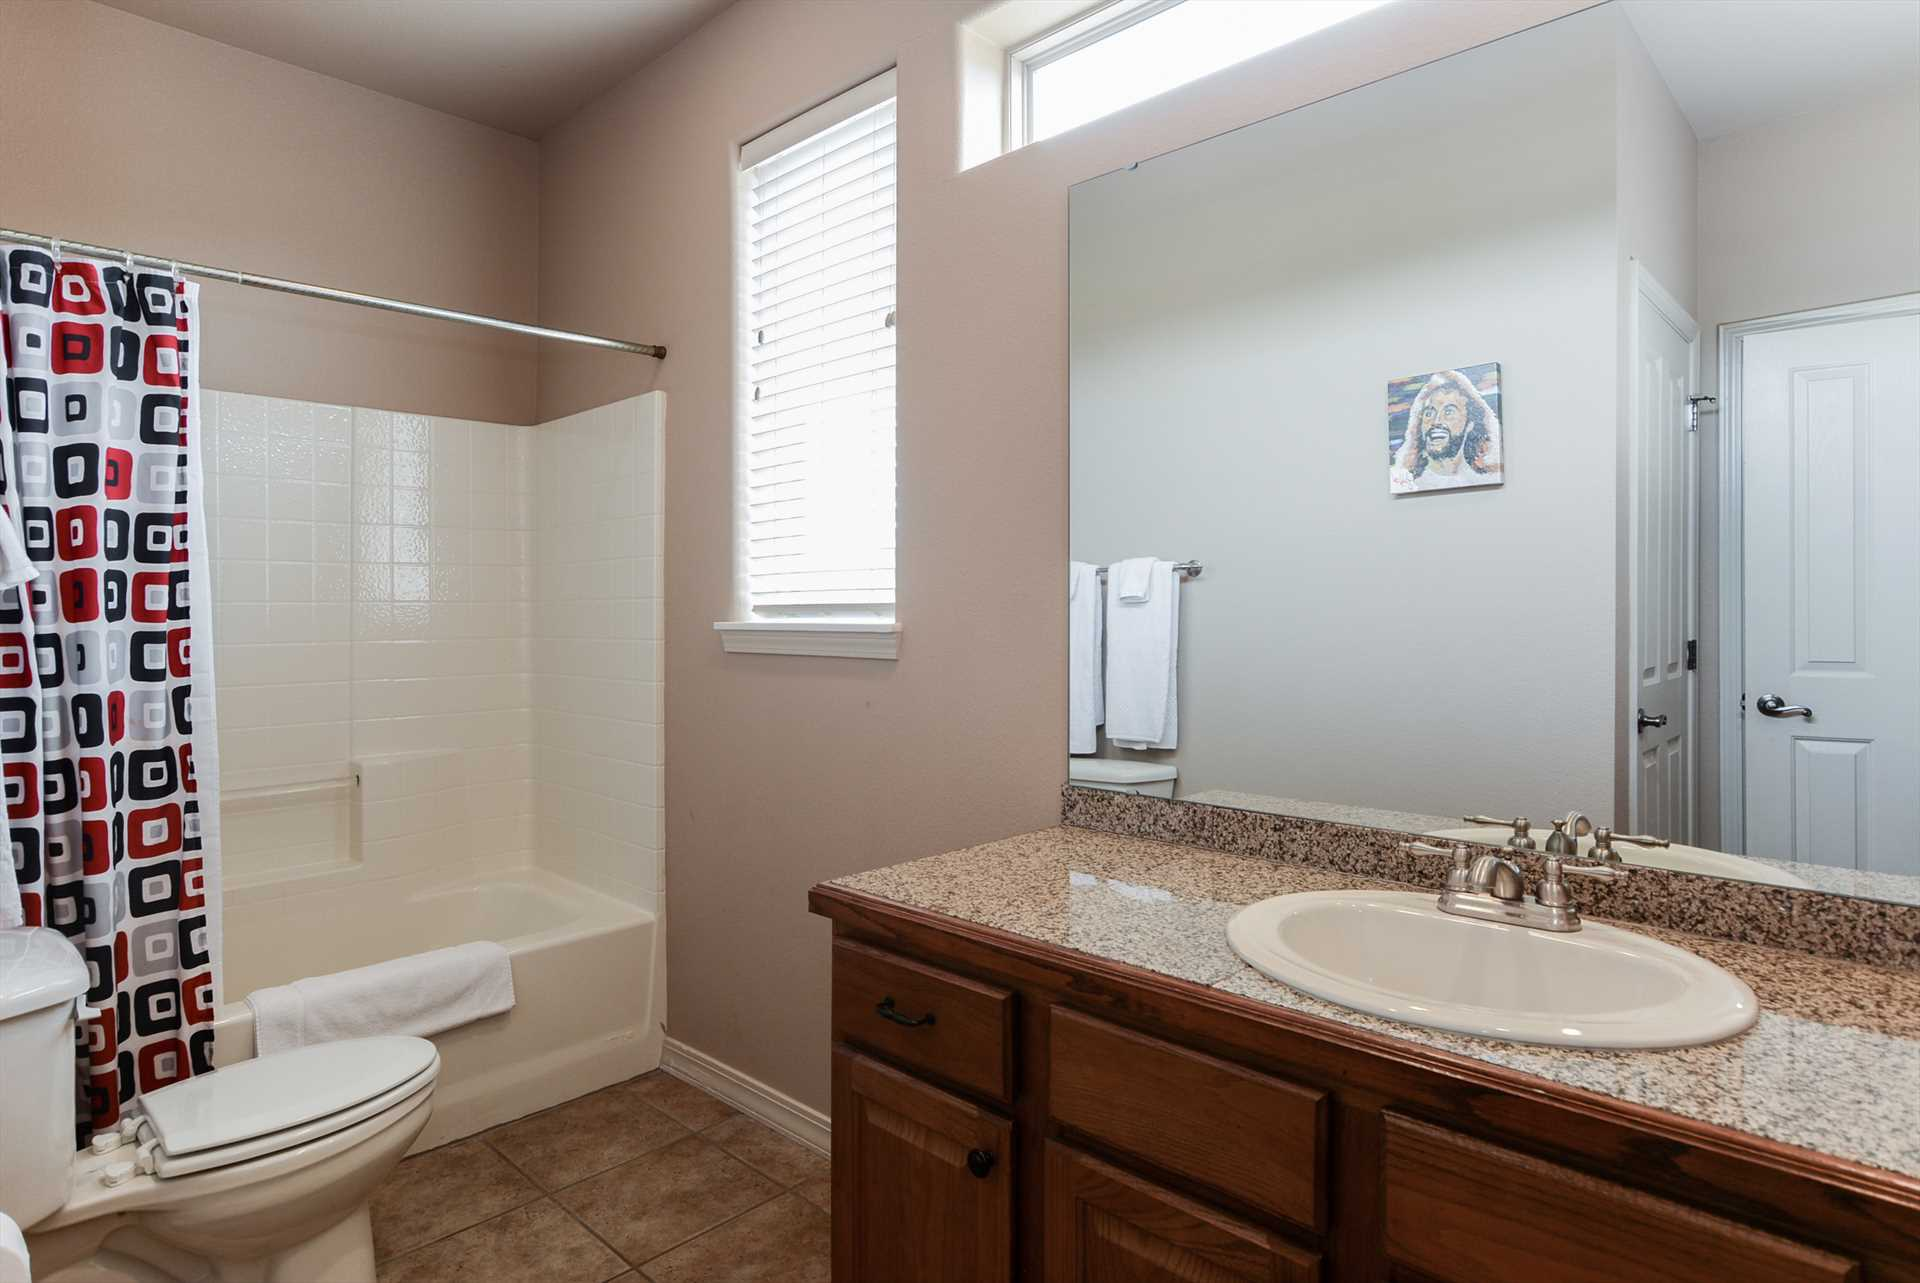 This bathroom includes a large tub.